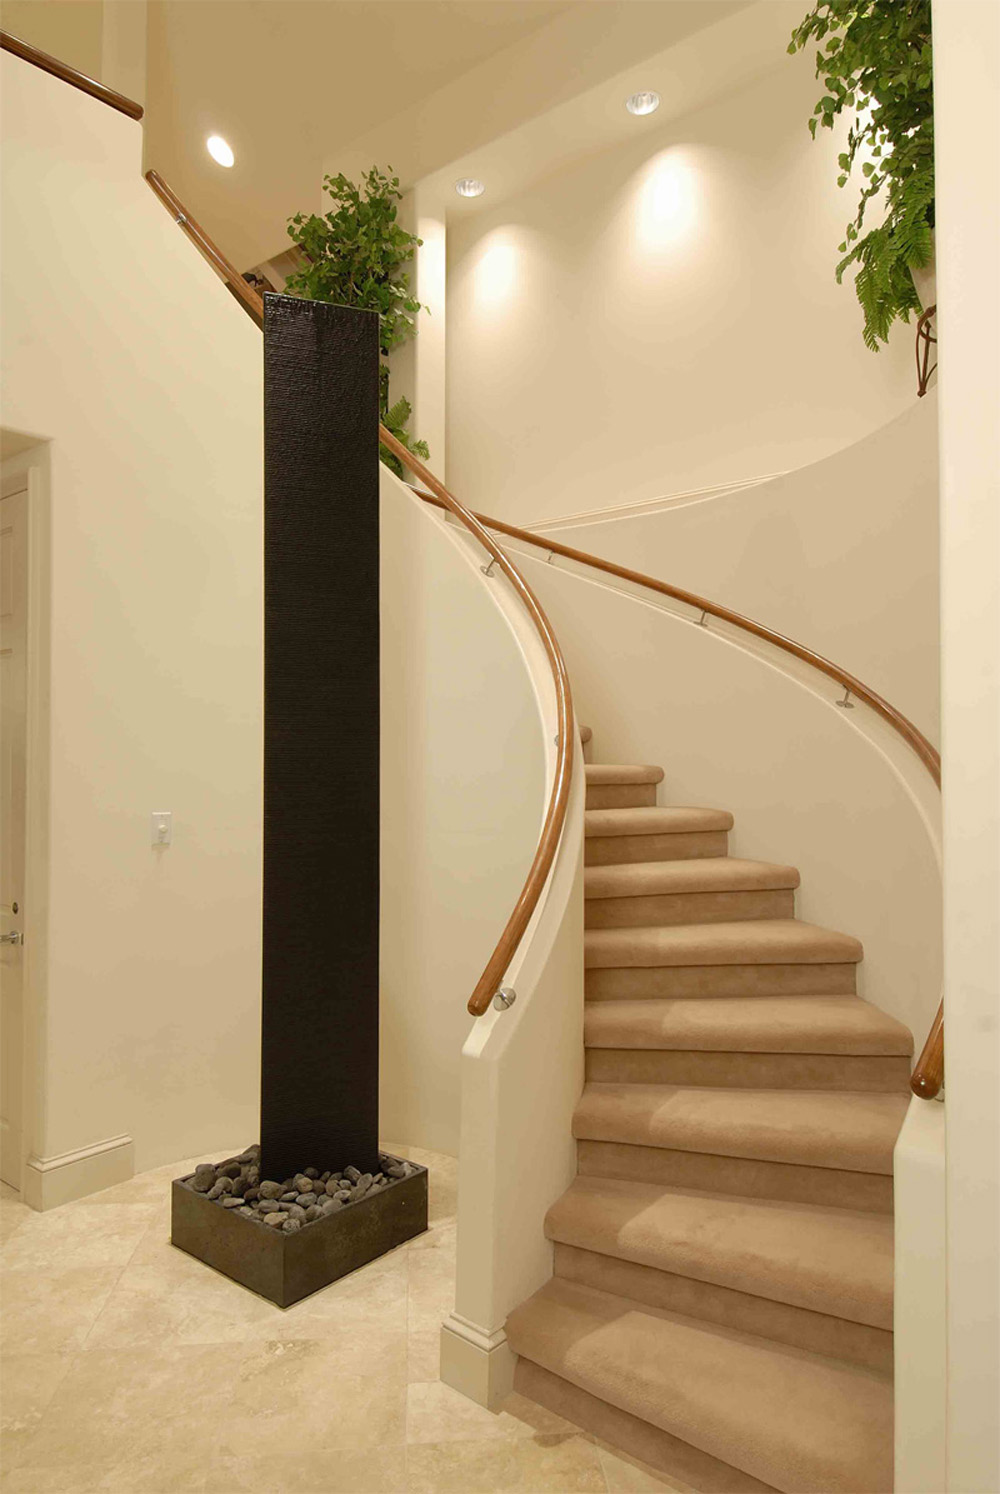 Beautiful Staircase Interior Beautiful Staircase Design Gallery 10 Photos Modern House Plans